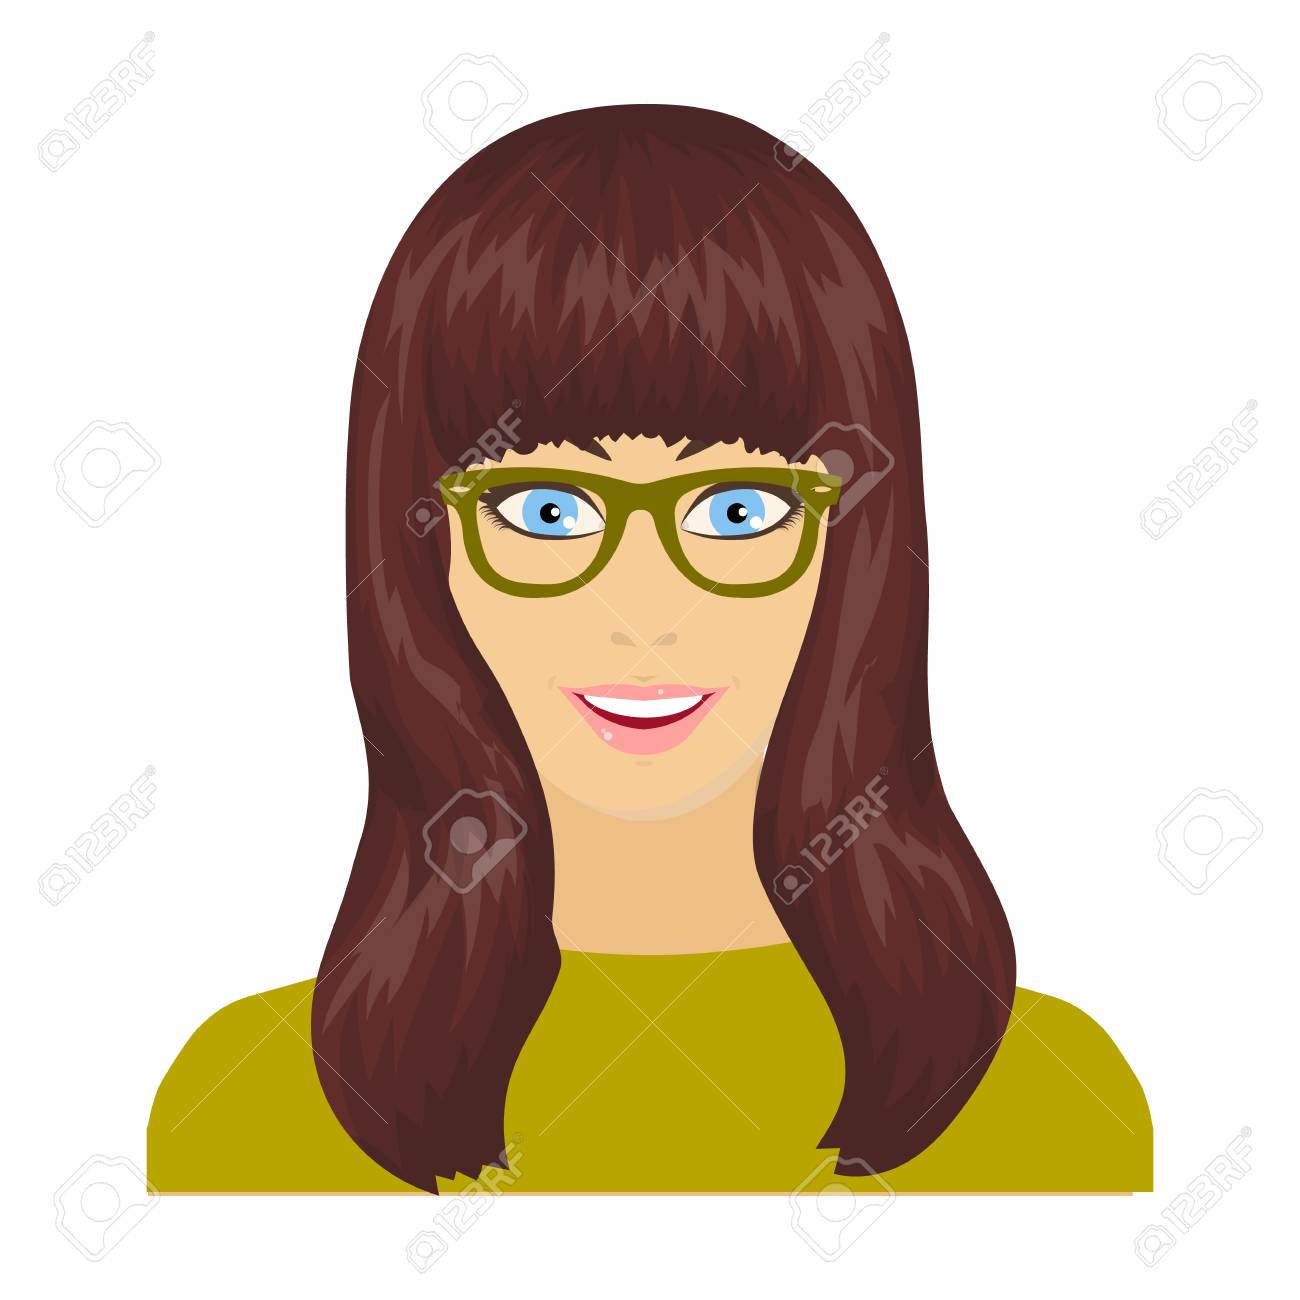 The girls face is wearing glasses face and appearance single icon in cartoon style vector